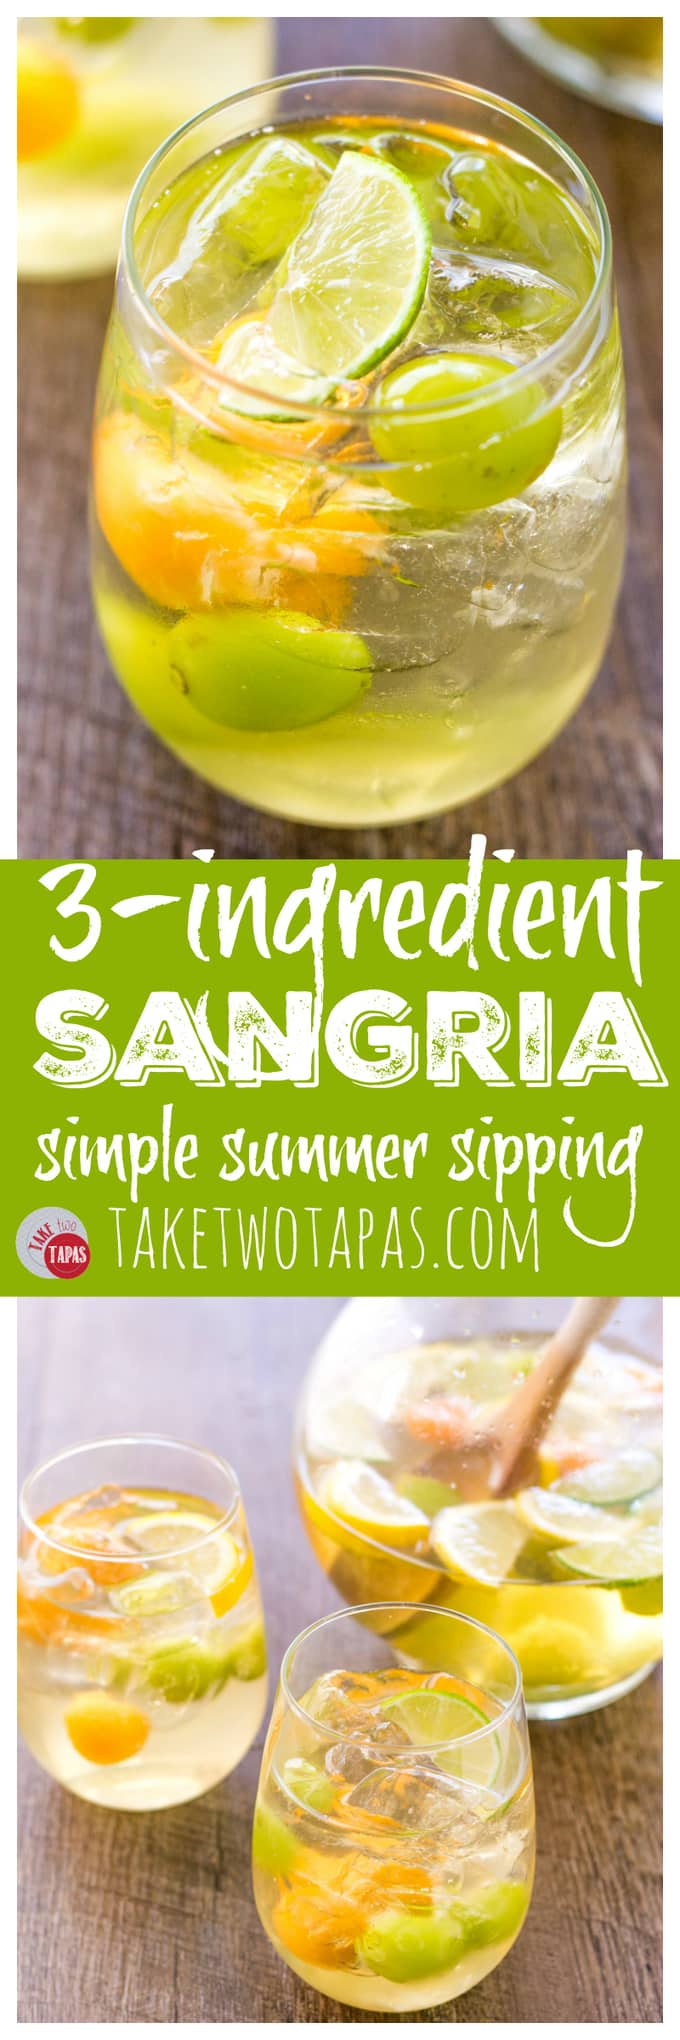 3 Ingredient Sangria for Summer Entertaining and Cocktail | Take Two Tapas | #Summer #Sangria #CocktailRecipe #SimpleCocktail #EasyWineCocktails